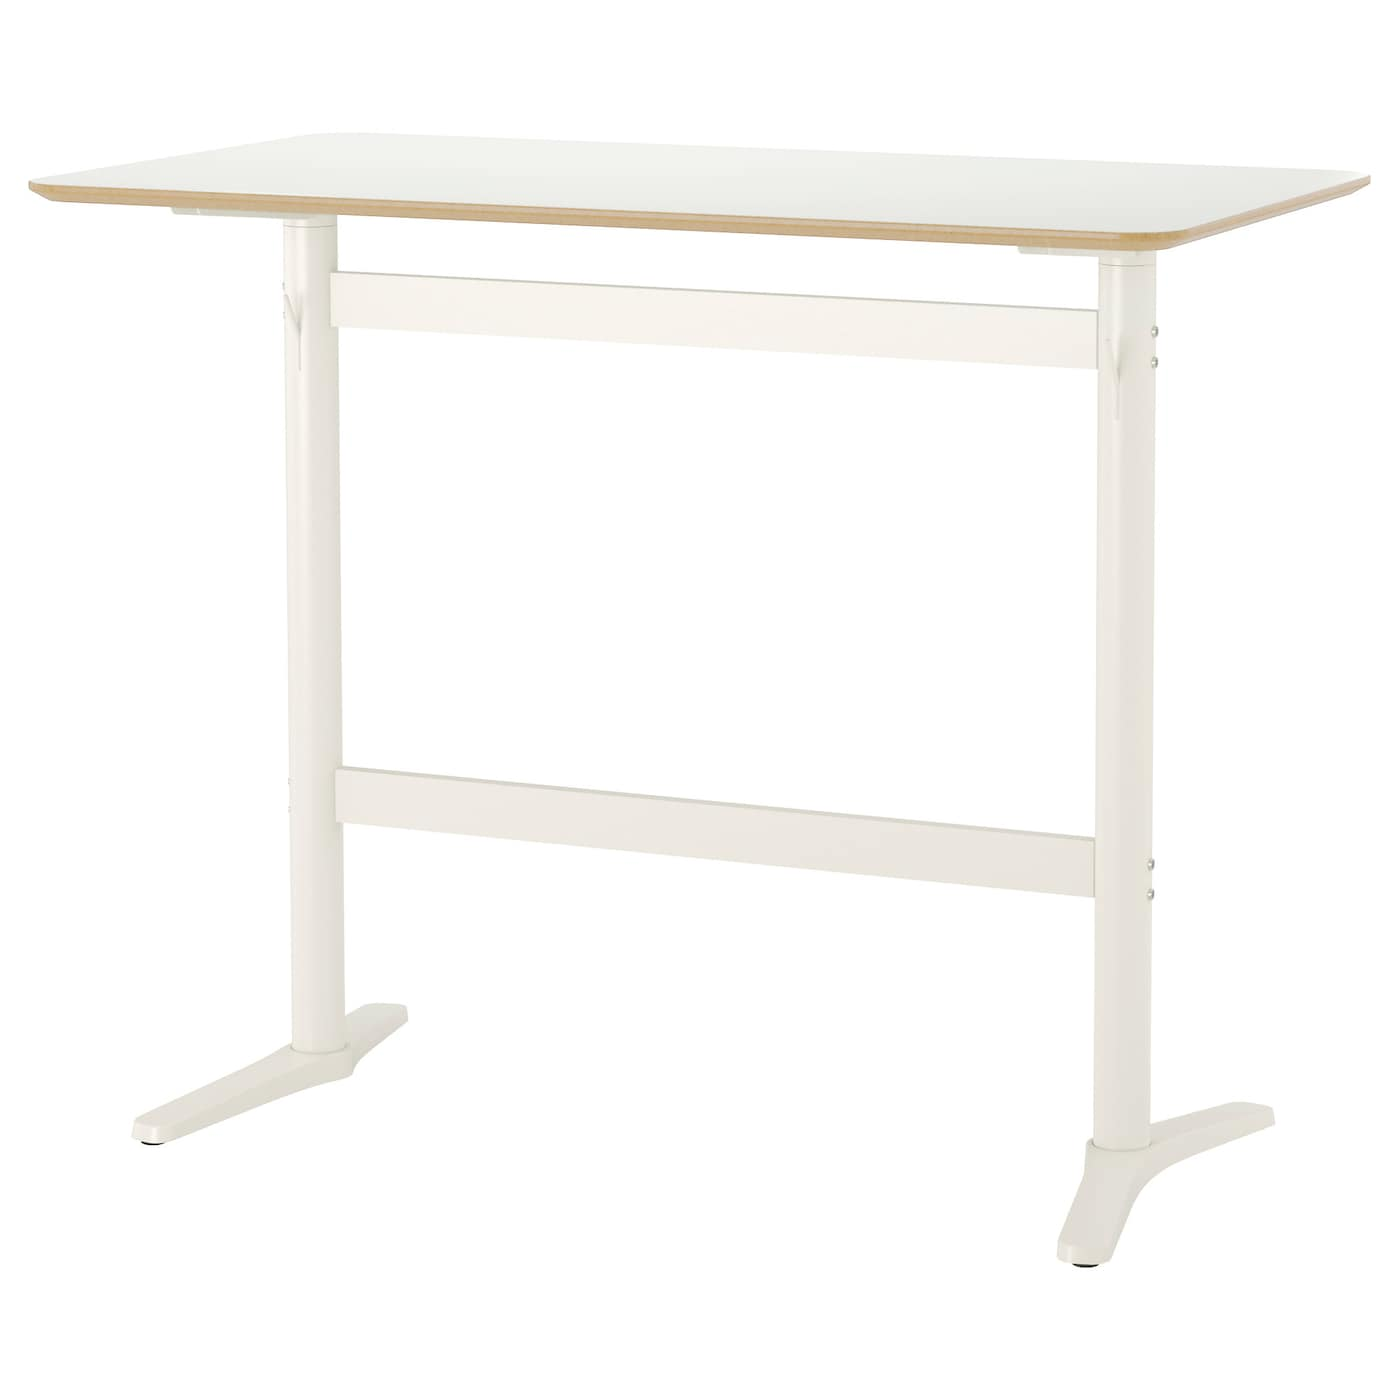 billsta bar table white white 130 x 70 cm ikea. Black Bedroom Furniture Sets. Home Design Ideas